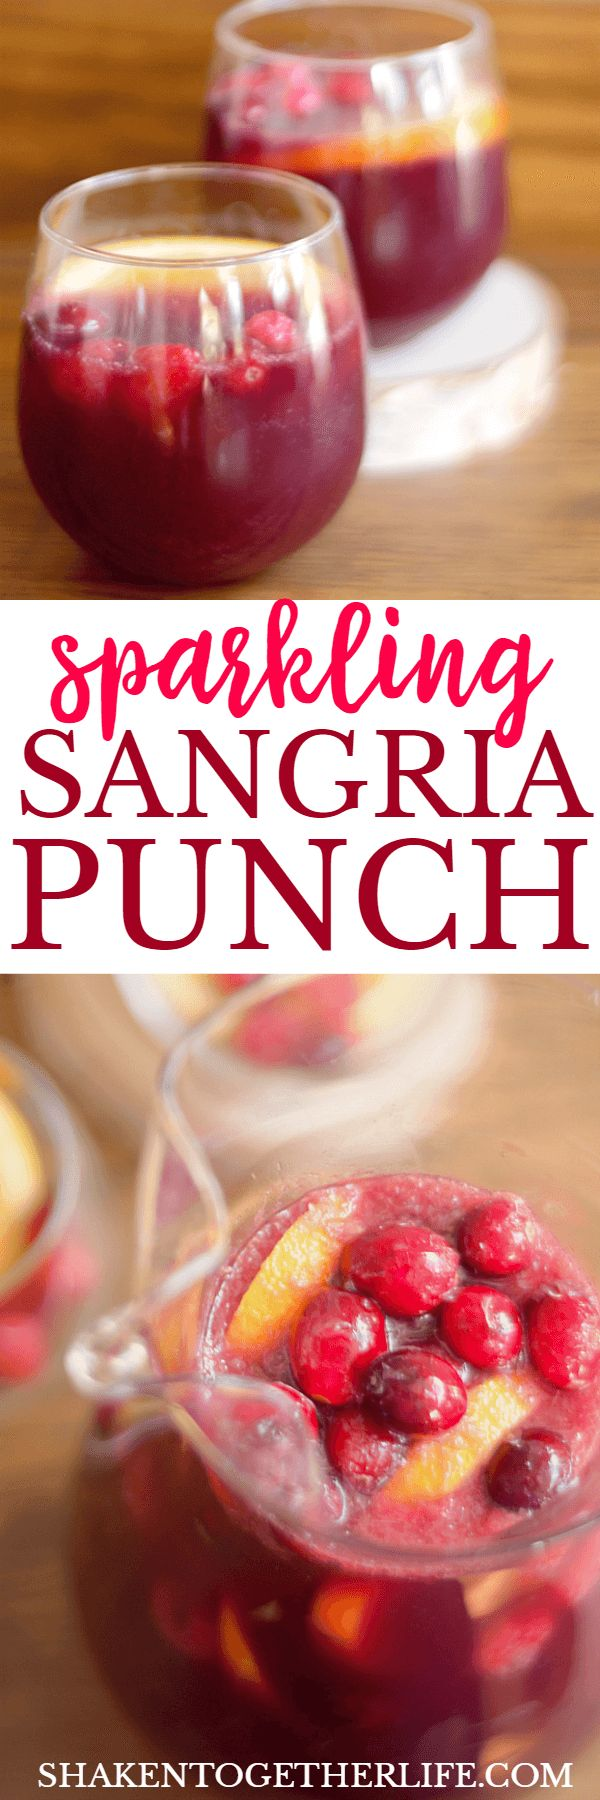 Sparkling Sangria Punch is festive and fruity without being too sweet or boozy!